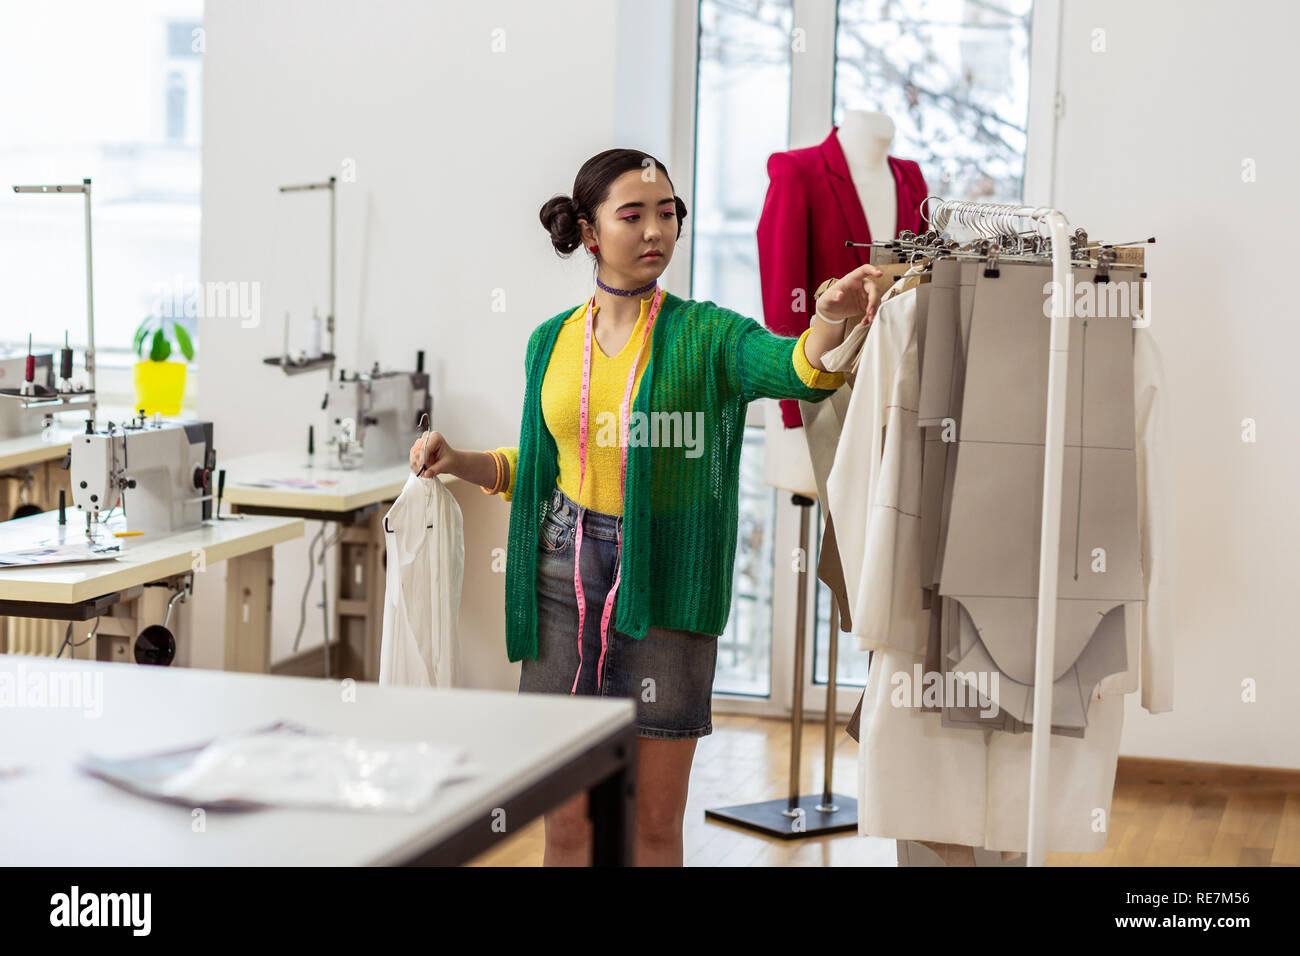 Young Slim Asian Fashion Designer In A Short Skirt Looking At The Dress Patterns Stock Photo Alamy